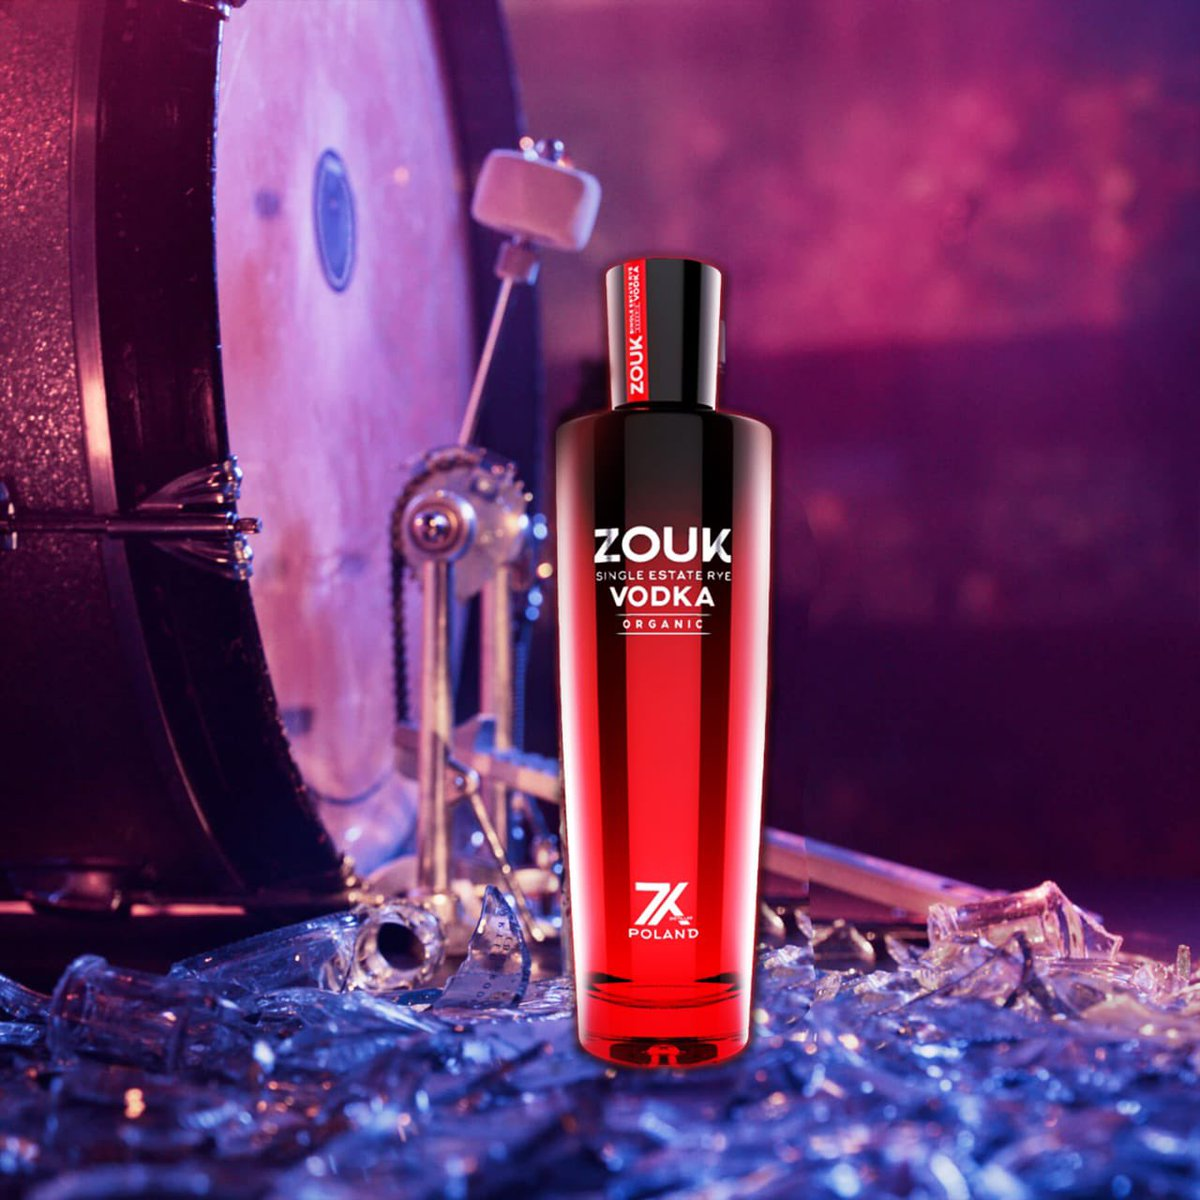 Saturday, weekend is here🕺🏼  Who doesn't love to have Vodka 🍸  Perfect time for Zouk Vodka   #zoukvodka #weekendvibes #saturdayevening #happysaturday